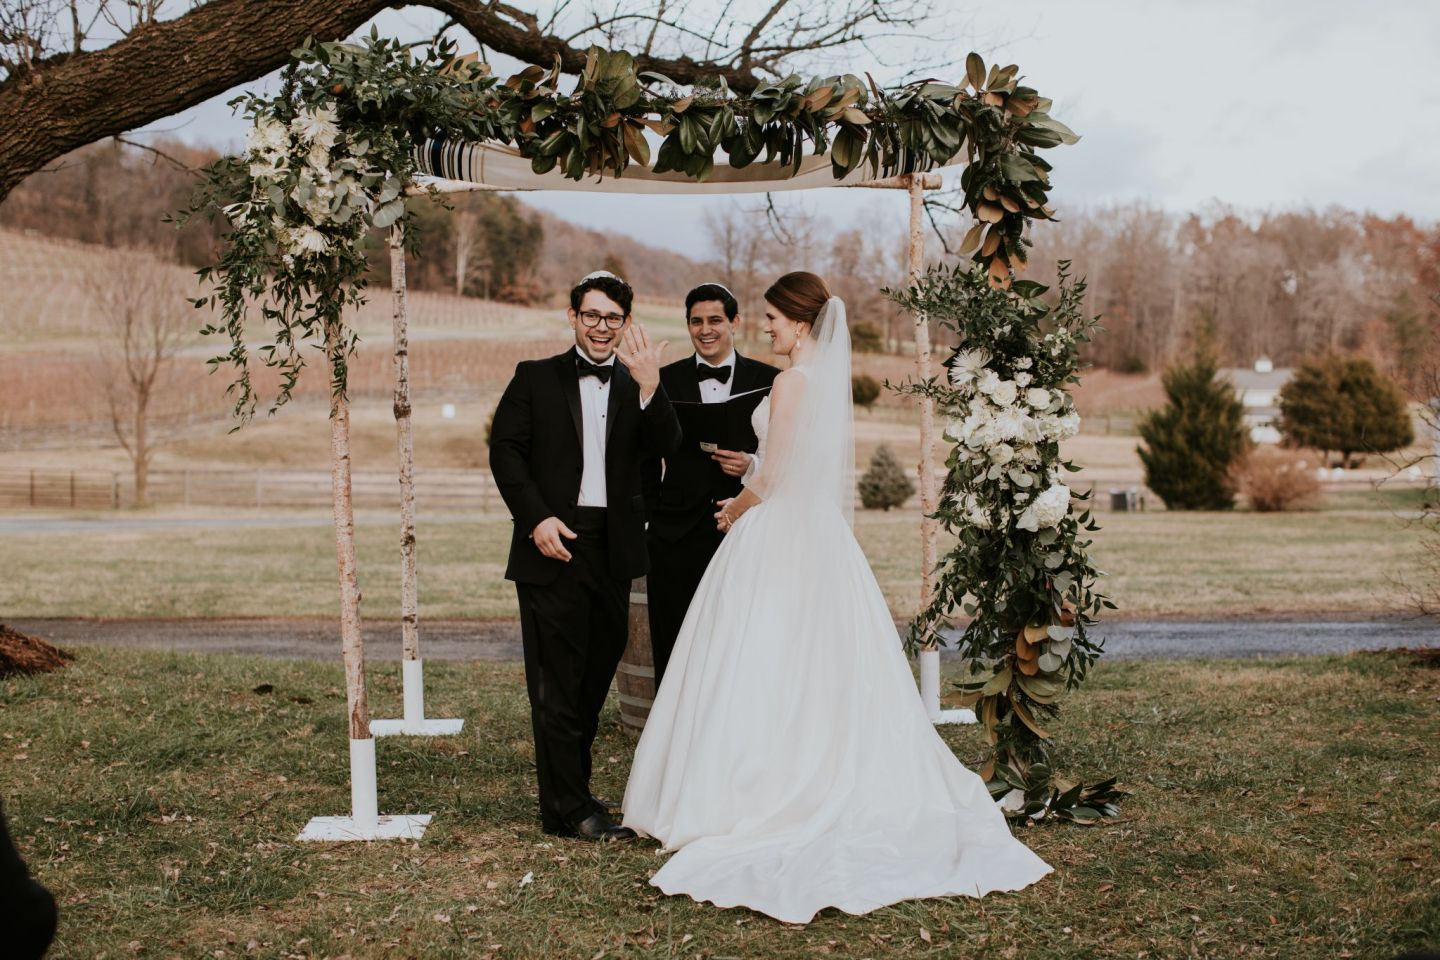 jewish wedding ceremony - veritas wedding - farmhouse at veritas wedding - charlottesville wedding